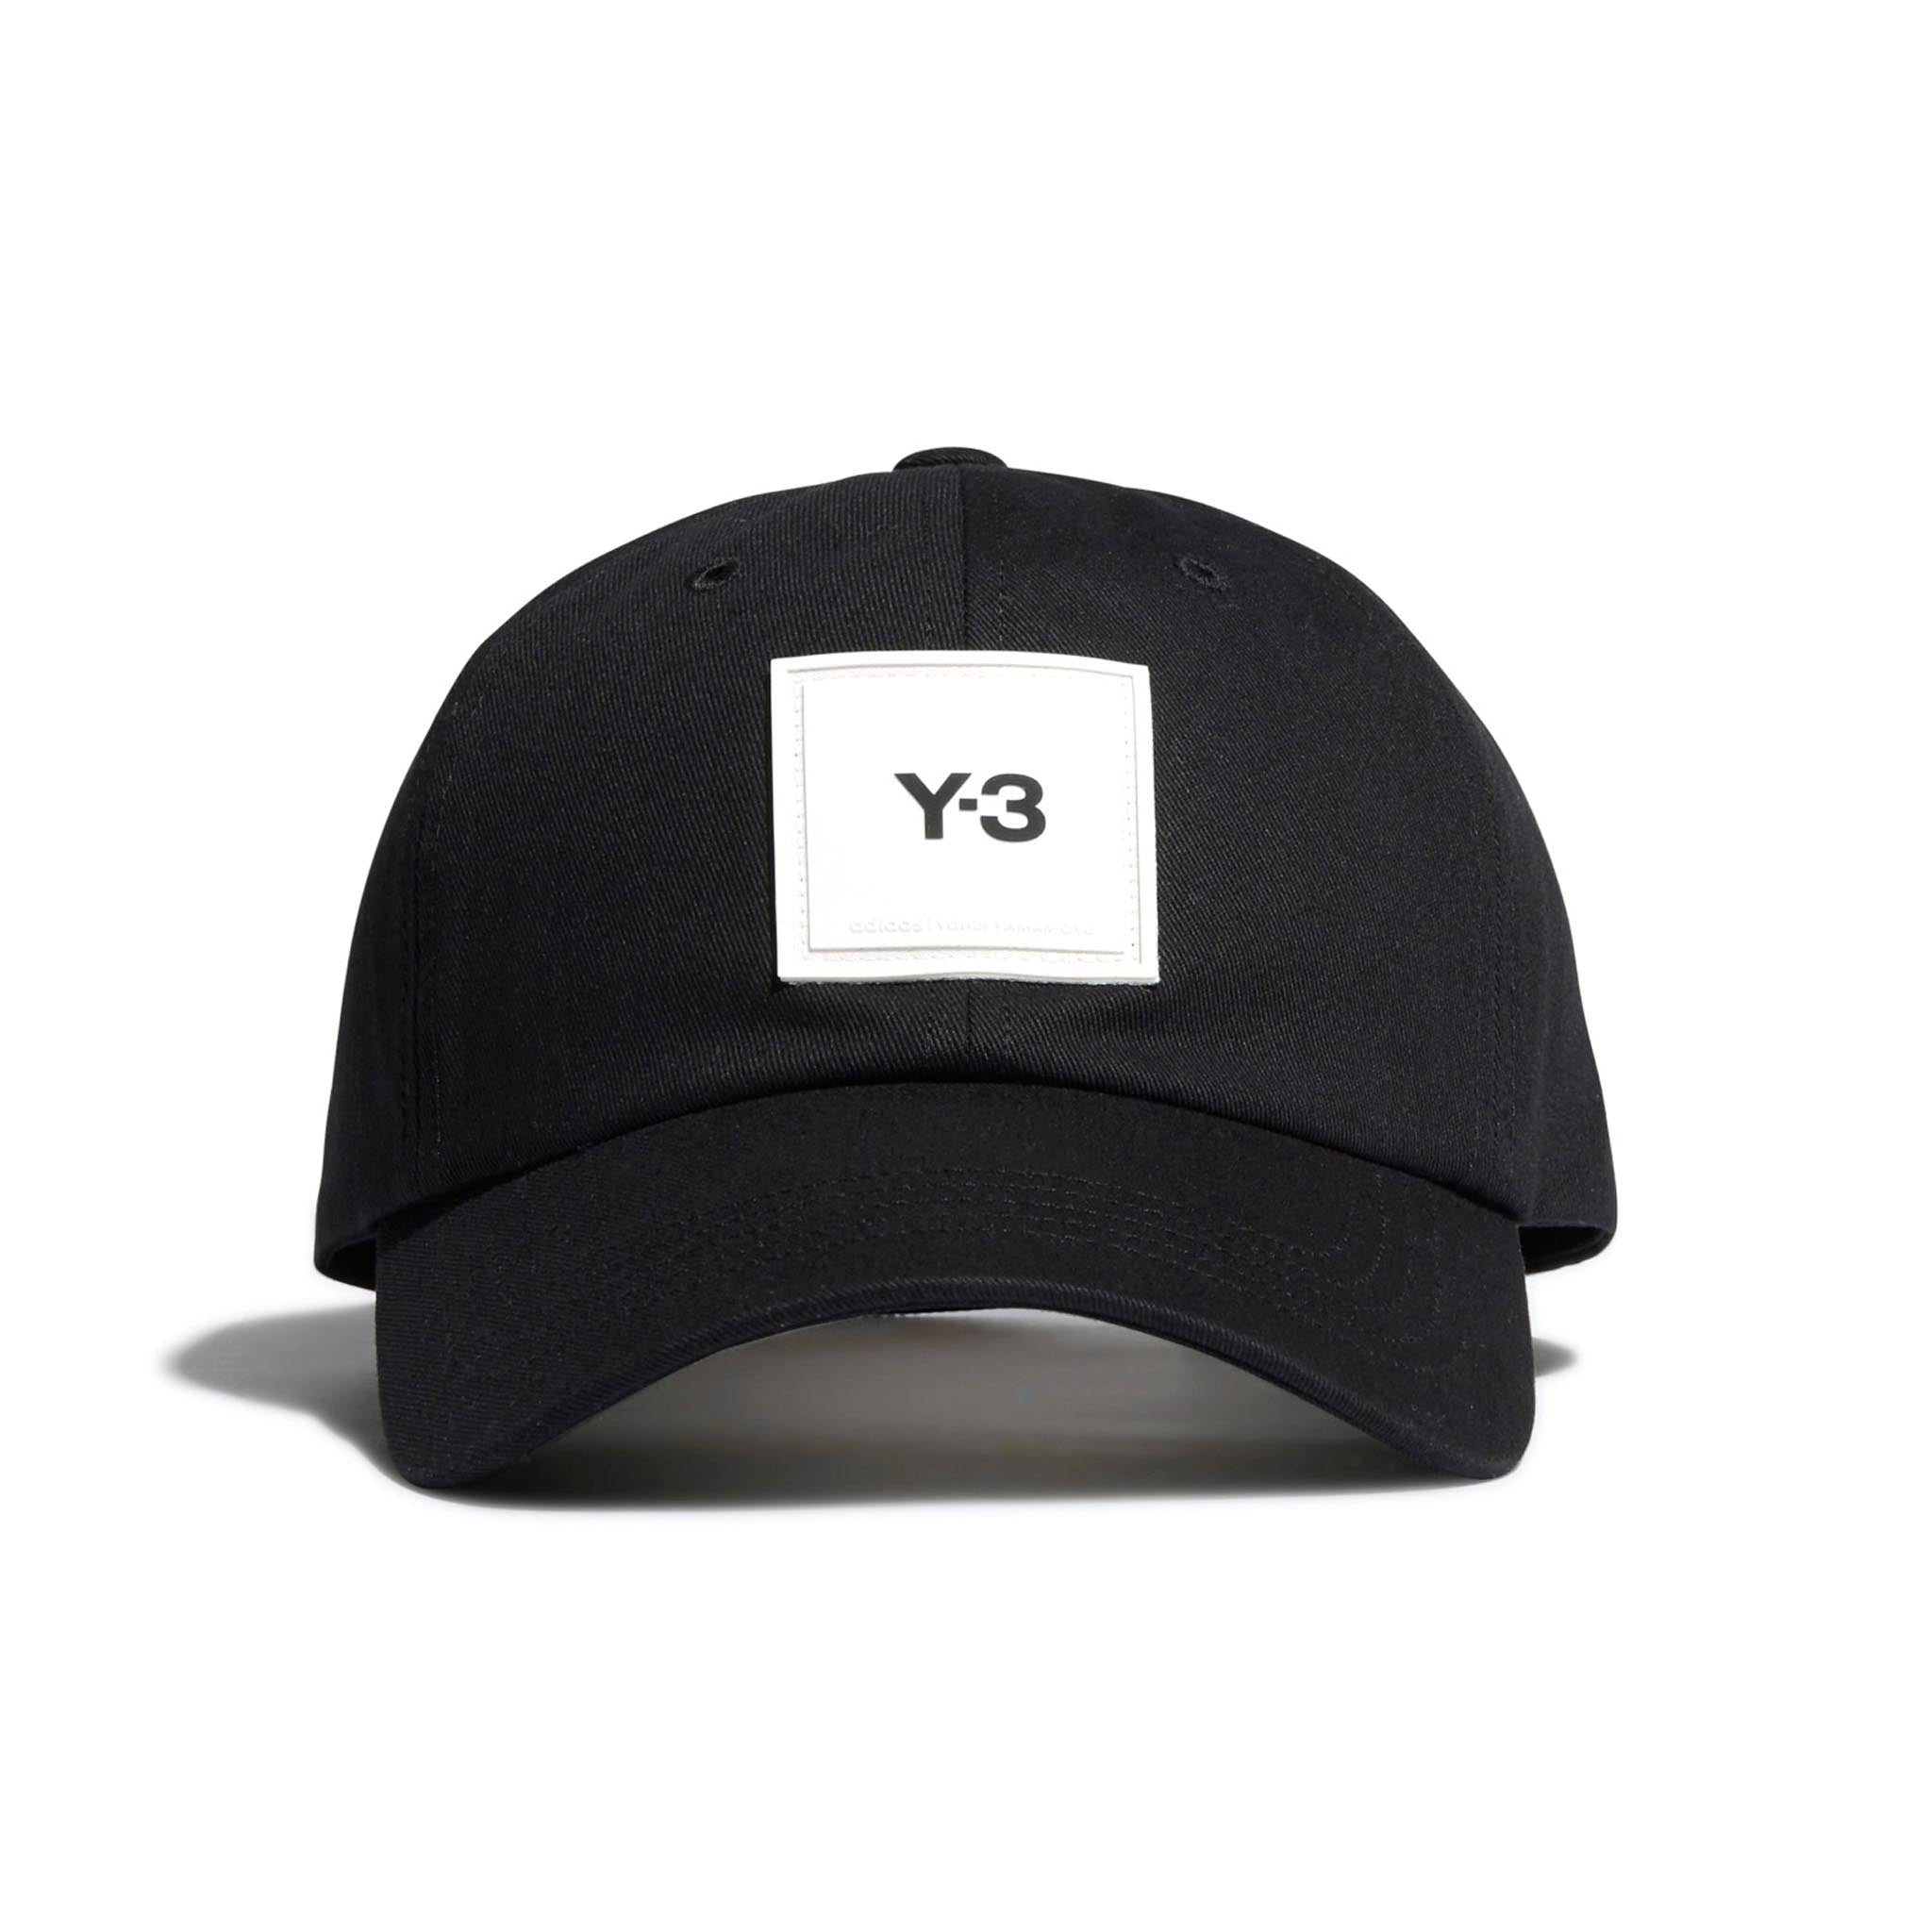 ADIDAS Y-3 Square Label Cap Black